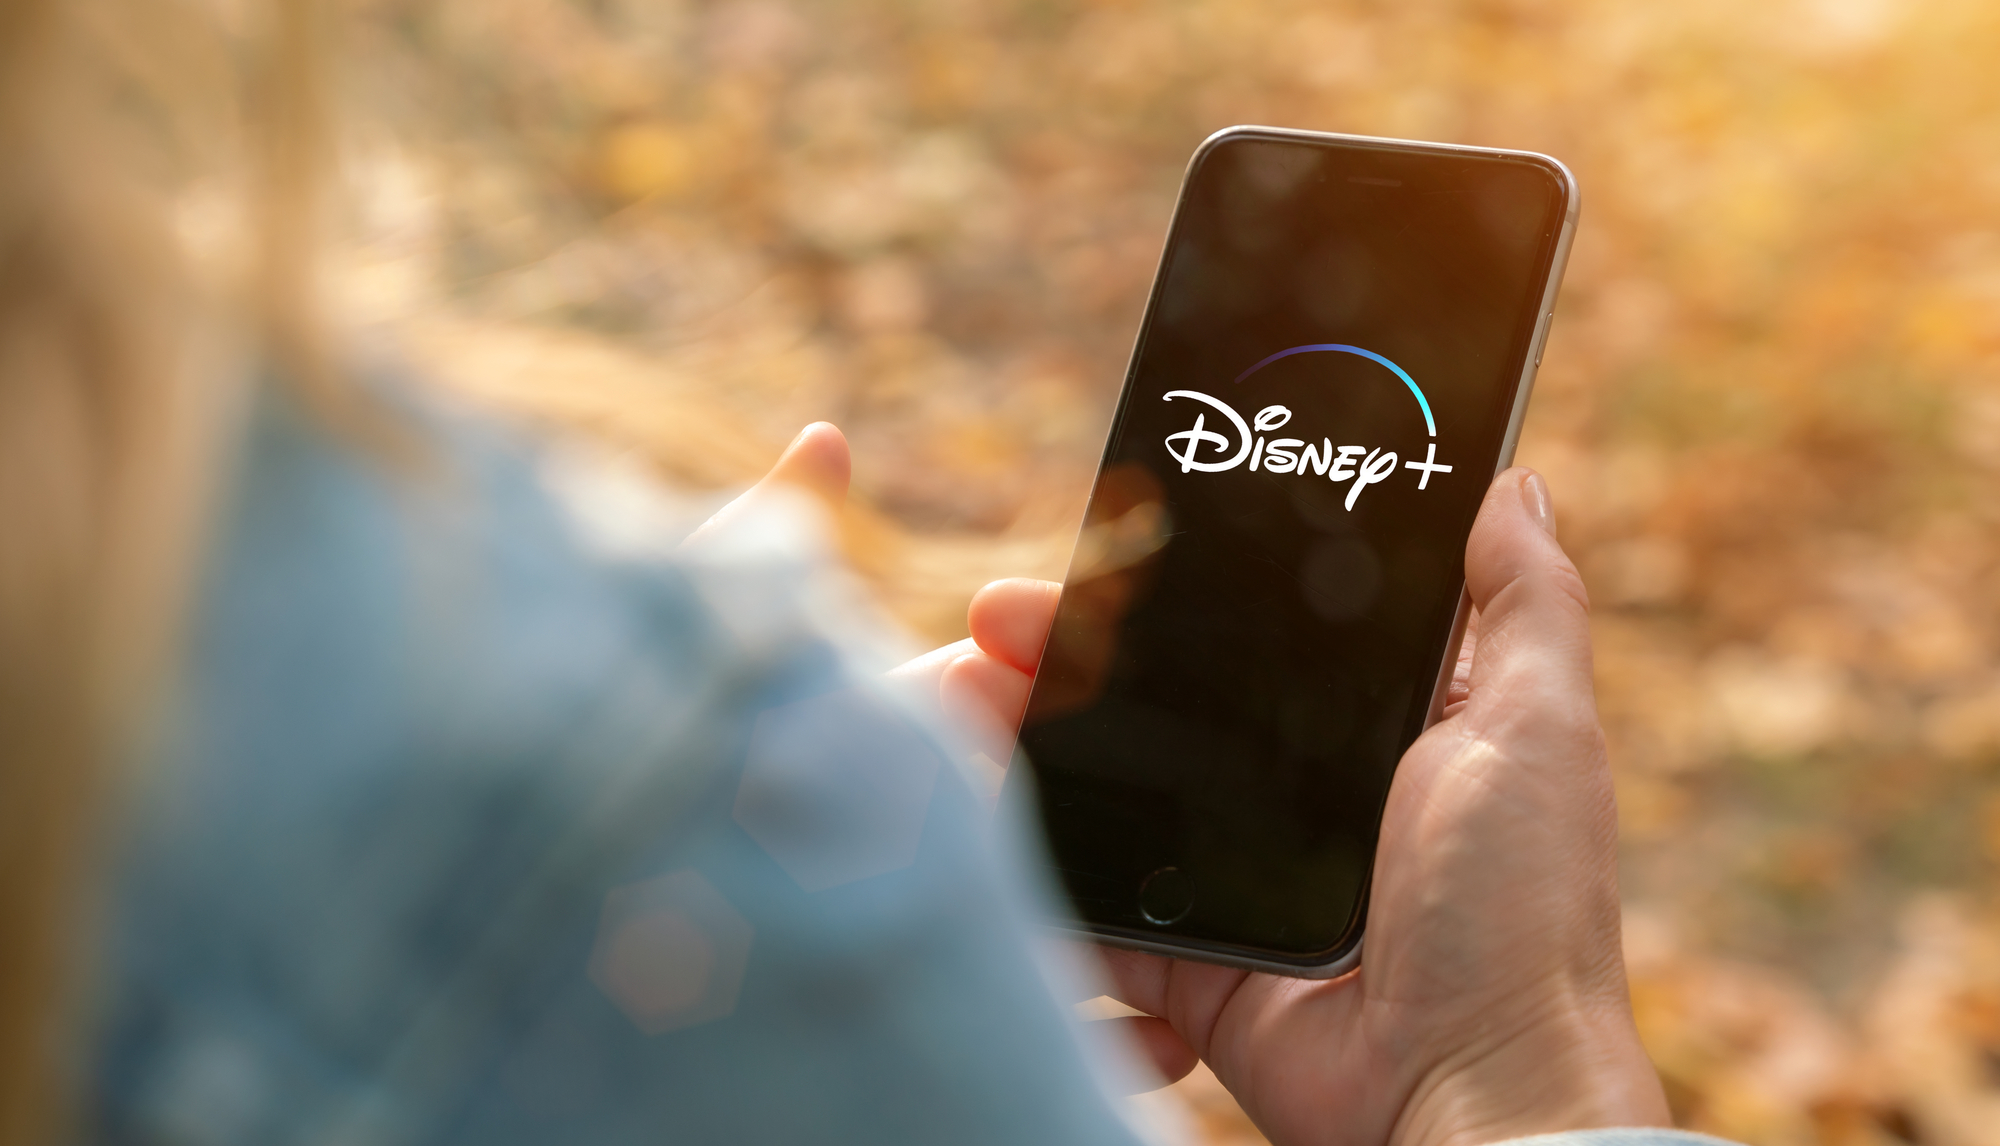 Disney's support center bombarded with calls